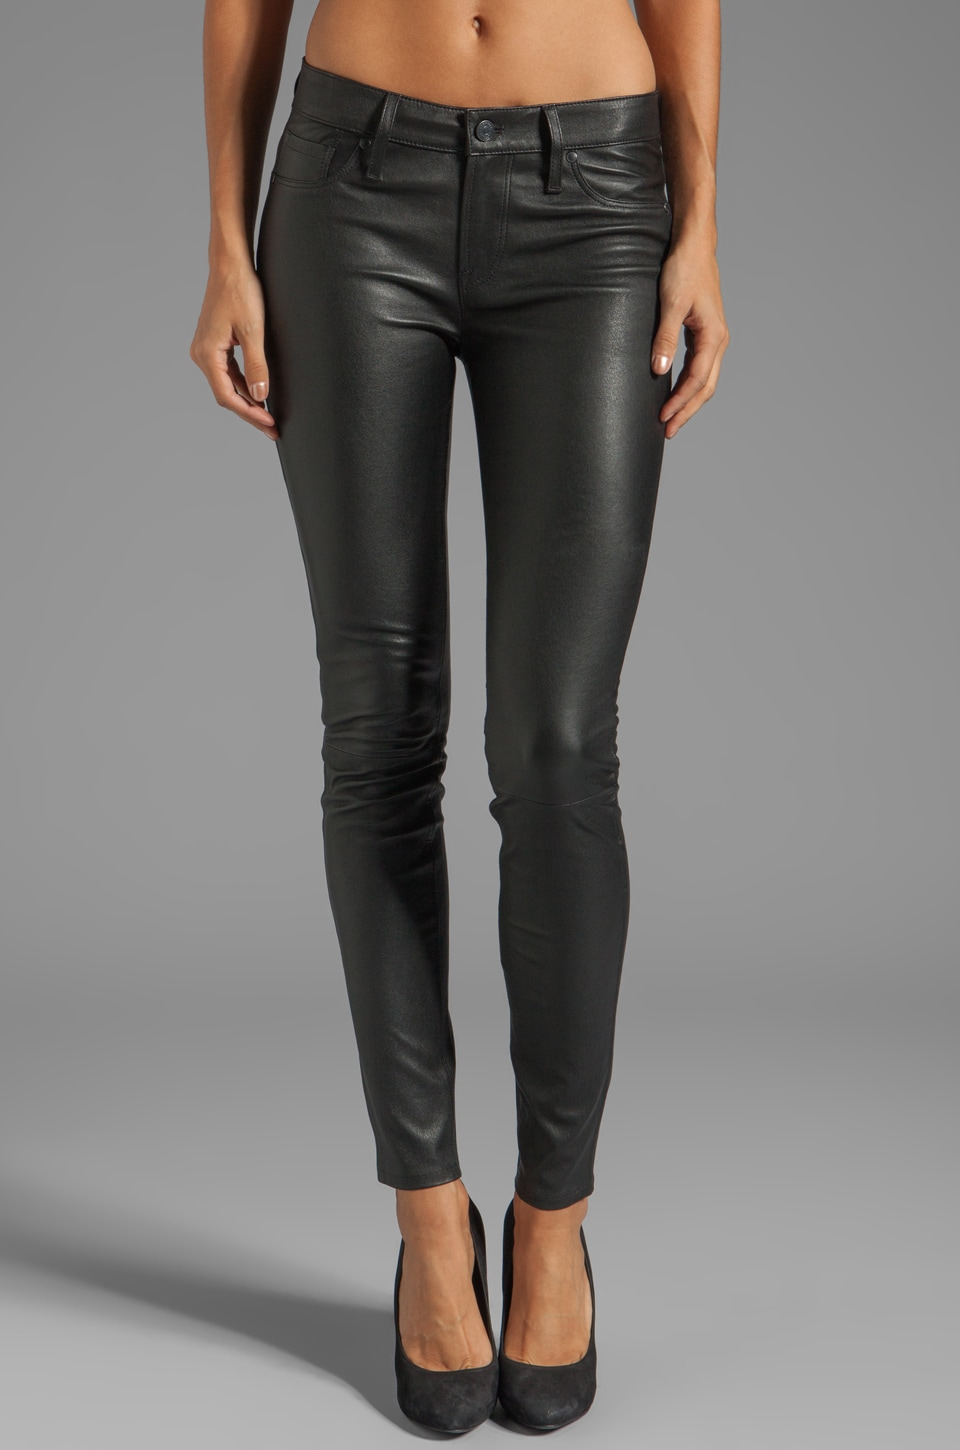 Marc by Marc Jacobs Leather Legging in Black